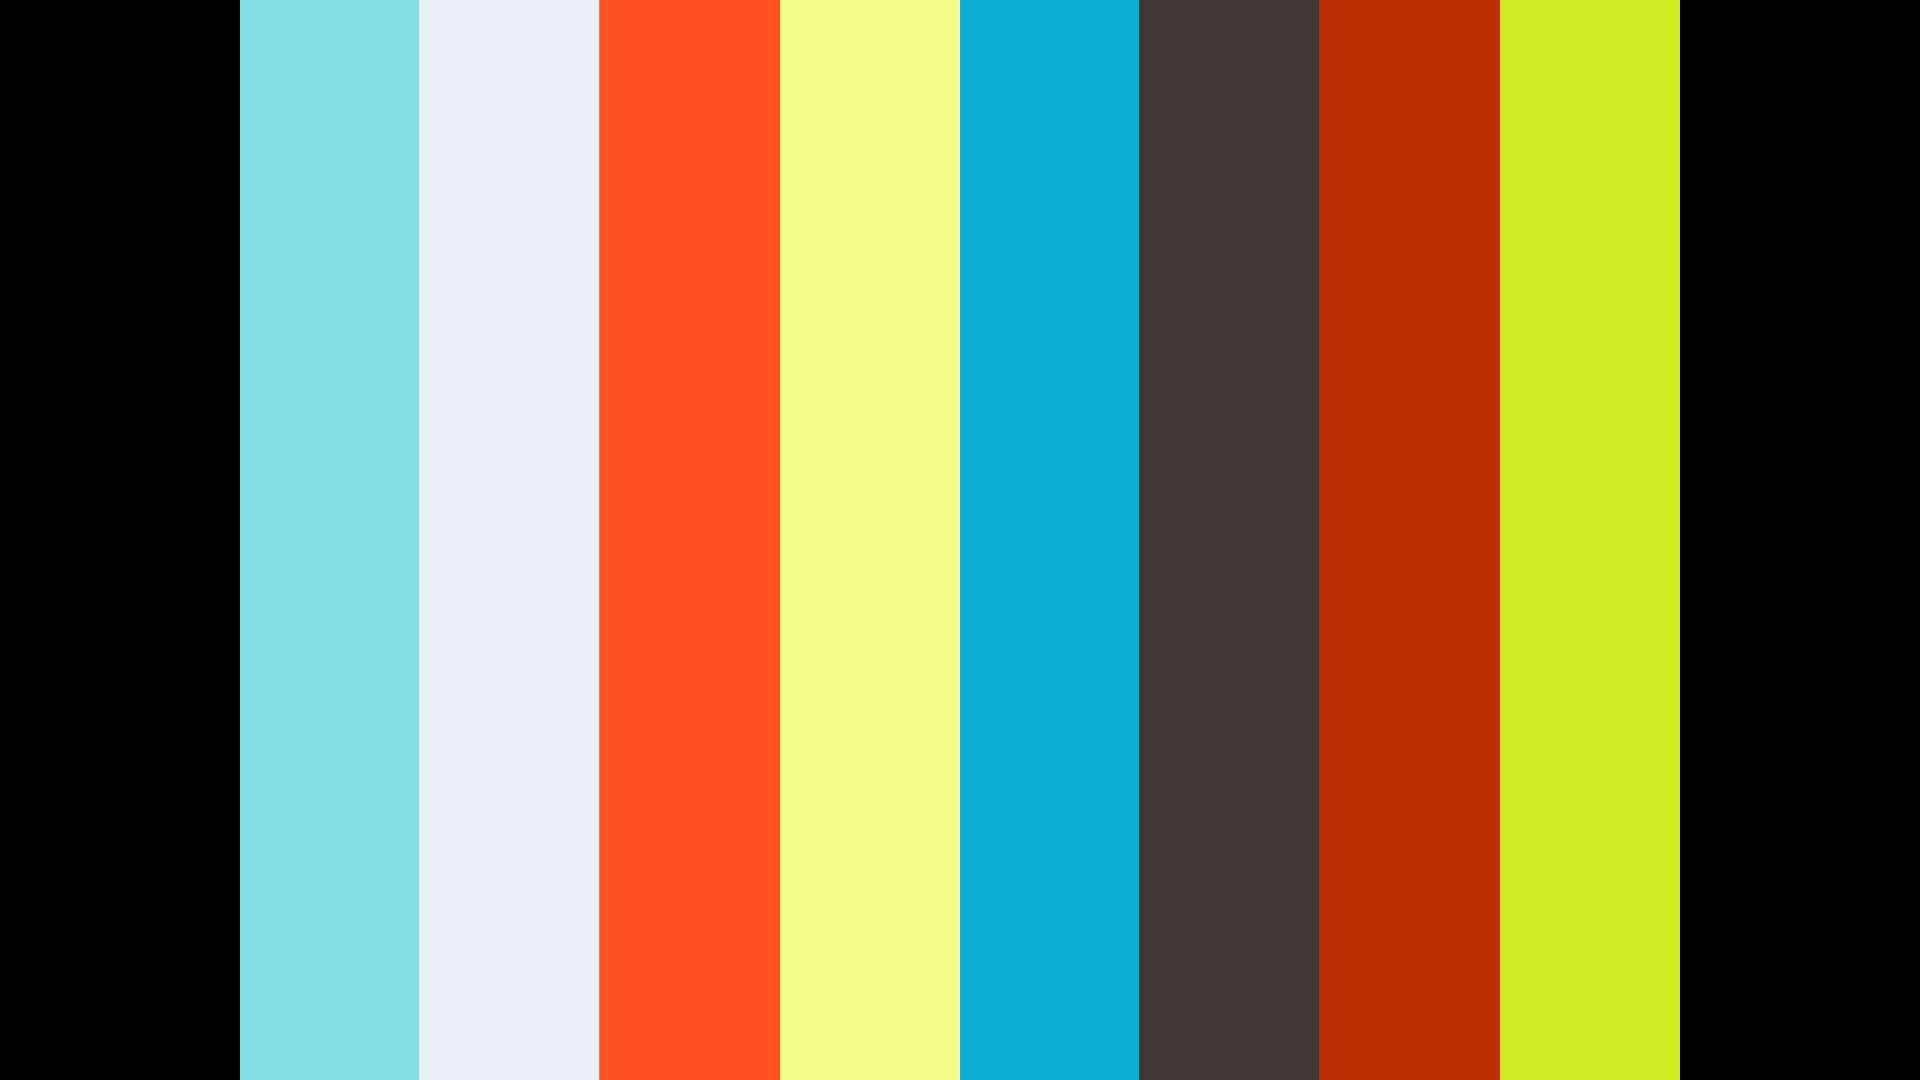 Introduction of Manuele Gragnolati by Anja Michaelsen [4, 1]